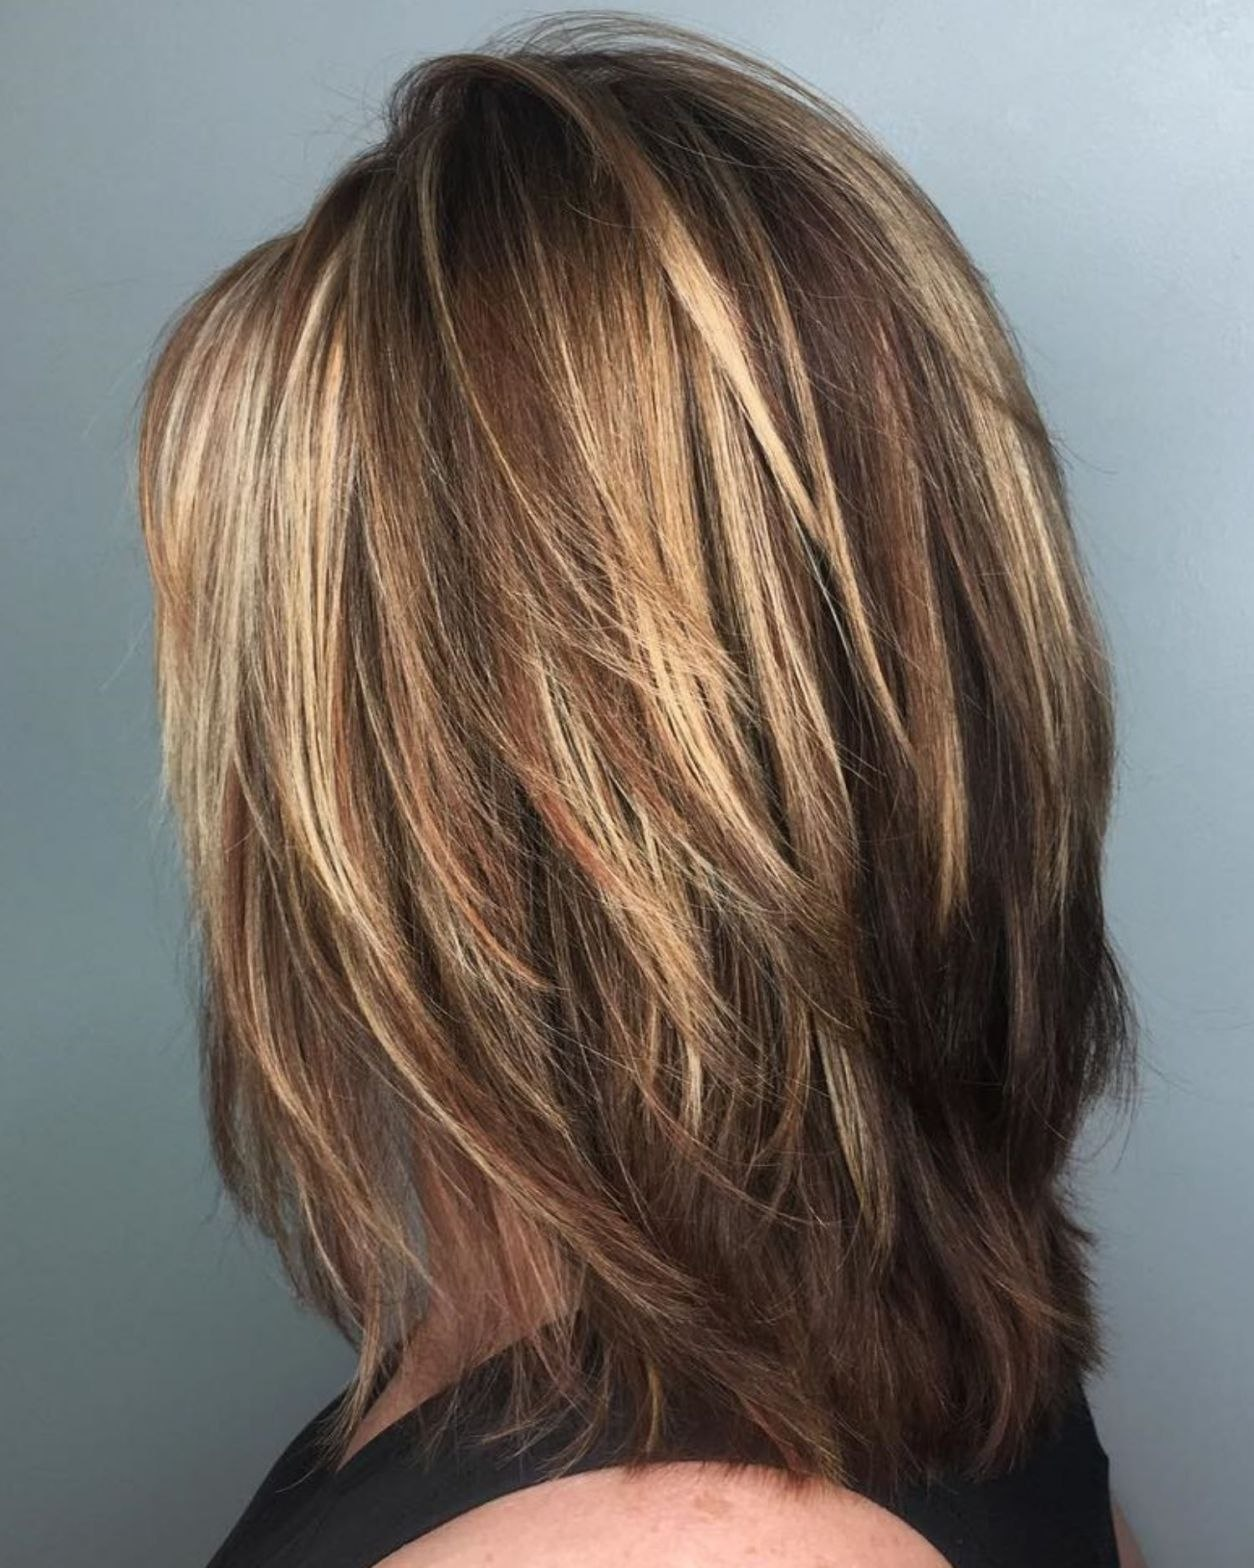 Feathered Layered Medium Hairstyle Elegant 70 Brightest Medium Layered Haircuts To Light You Up Hair … Of Best Of Feathered Layered Medium Hairstyle